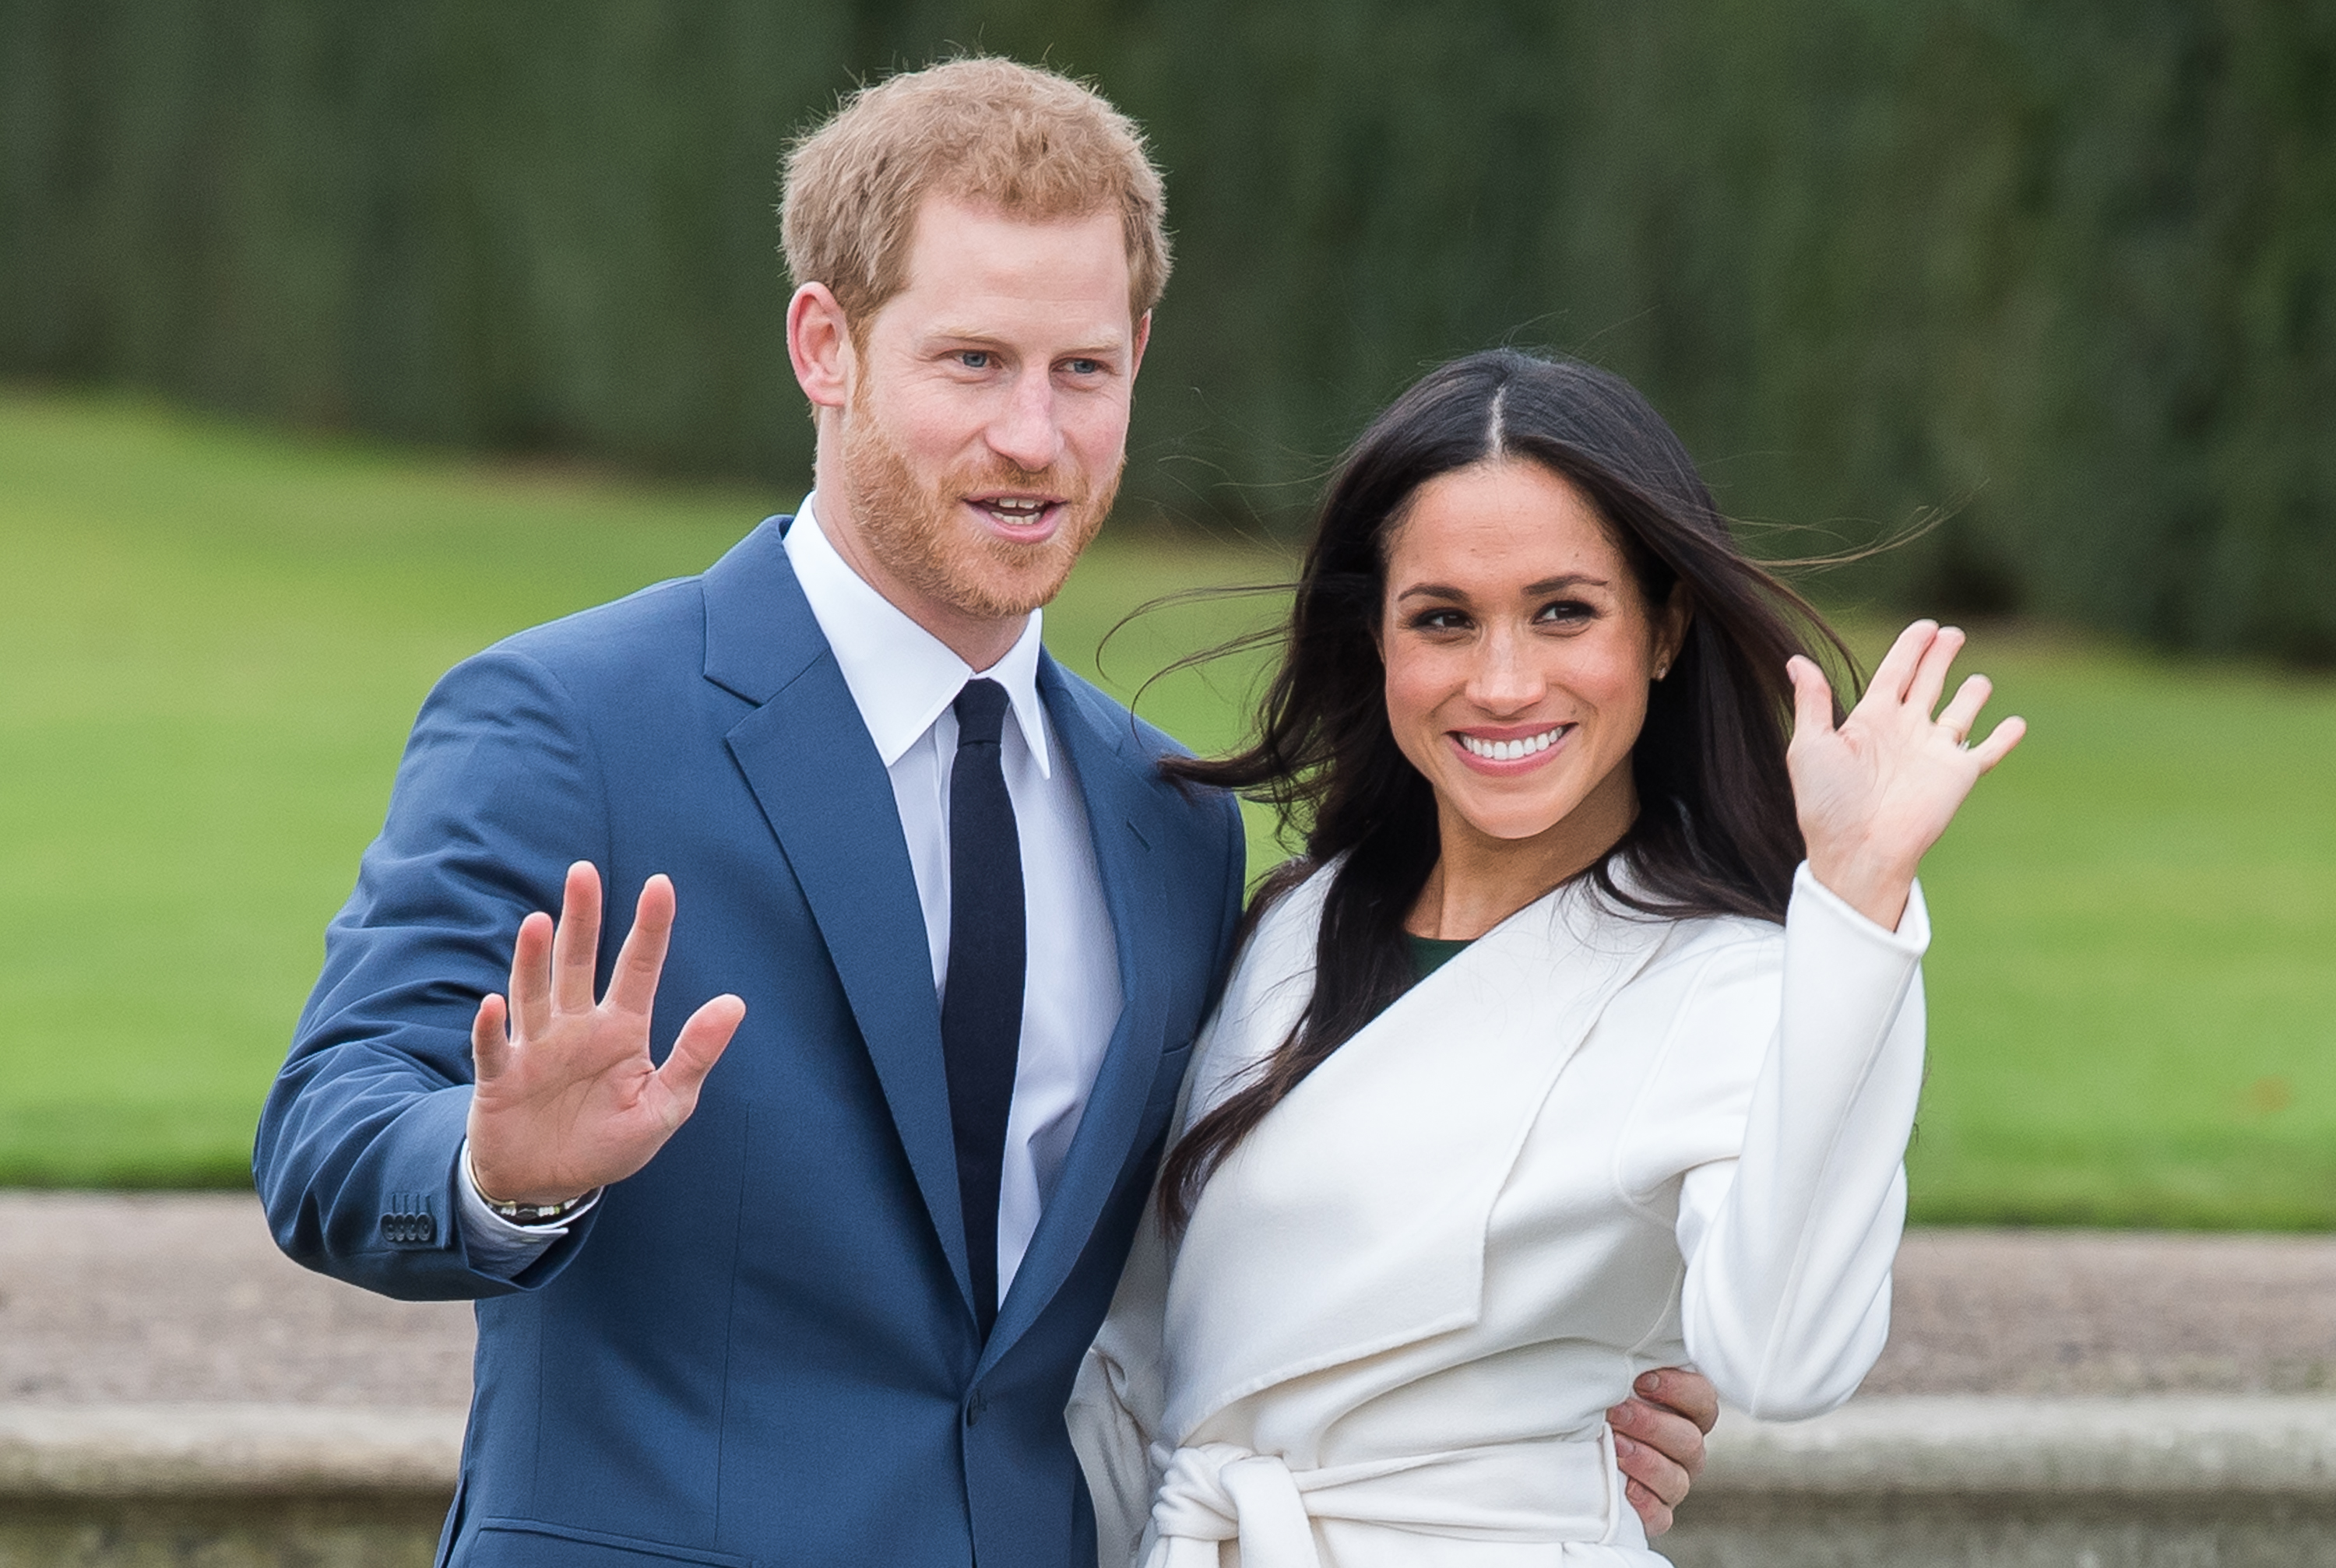 Prince Harry and Meghan Markle during an official photocall to announce the engagement of Prince Harry and actress Meghan Markle at The Sunken Gardens at Kensington Palace on November 27, 2017 in London, England.